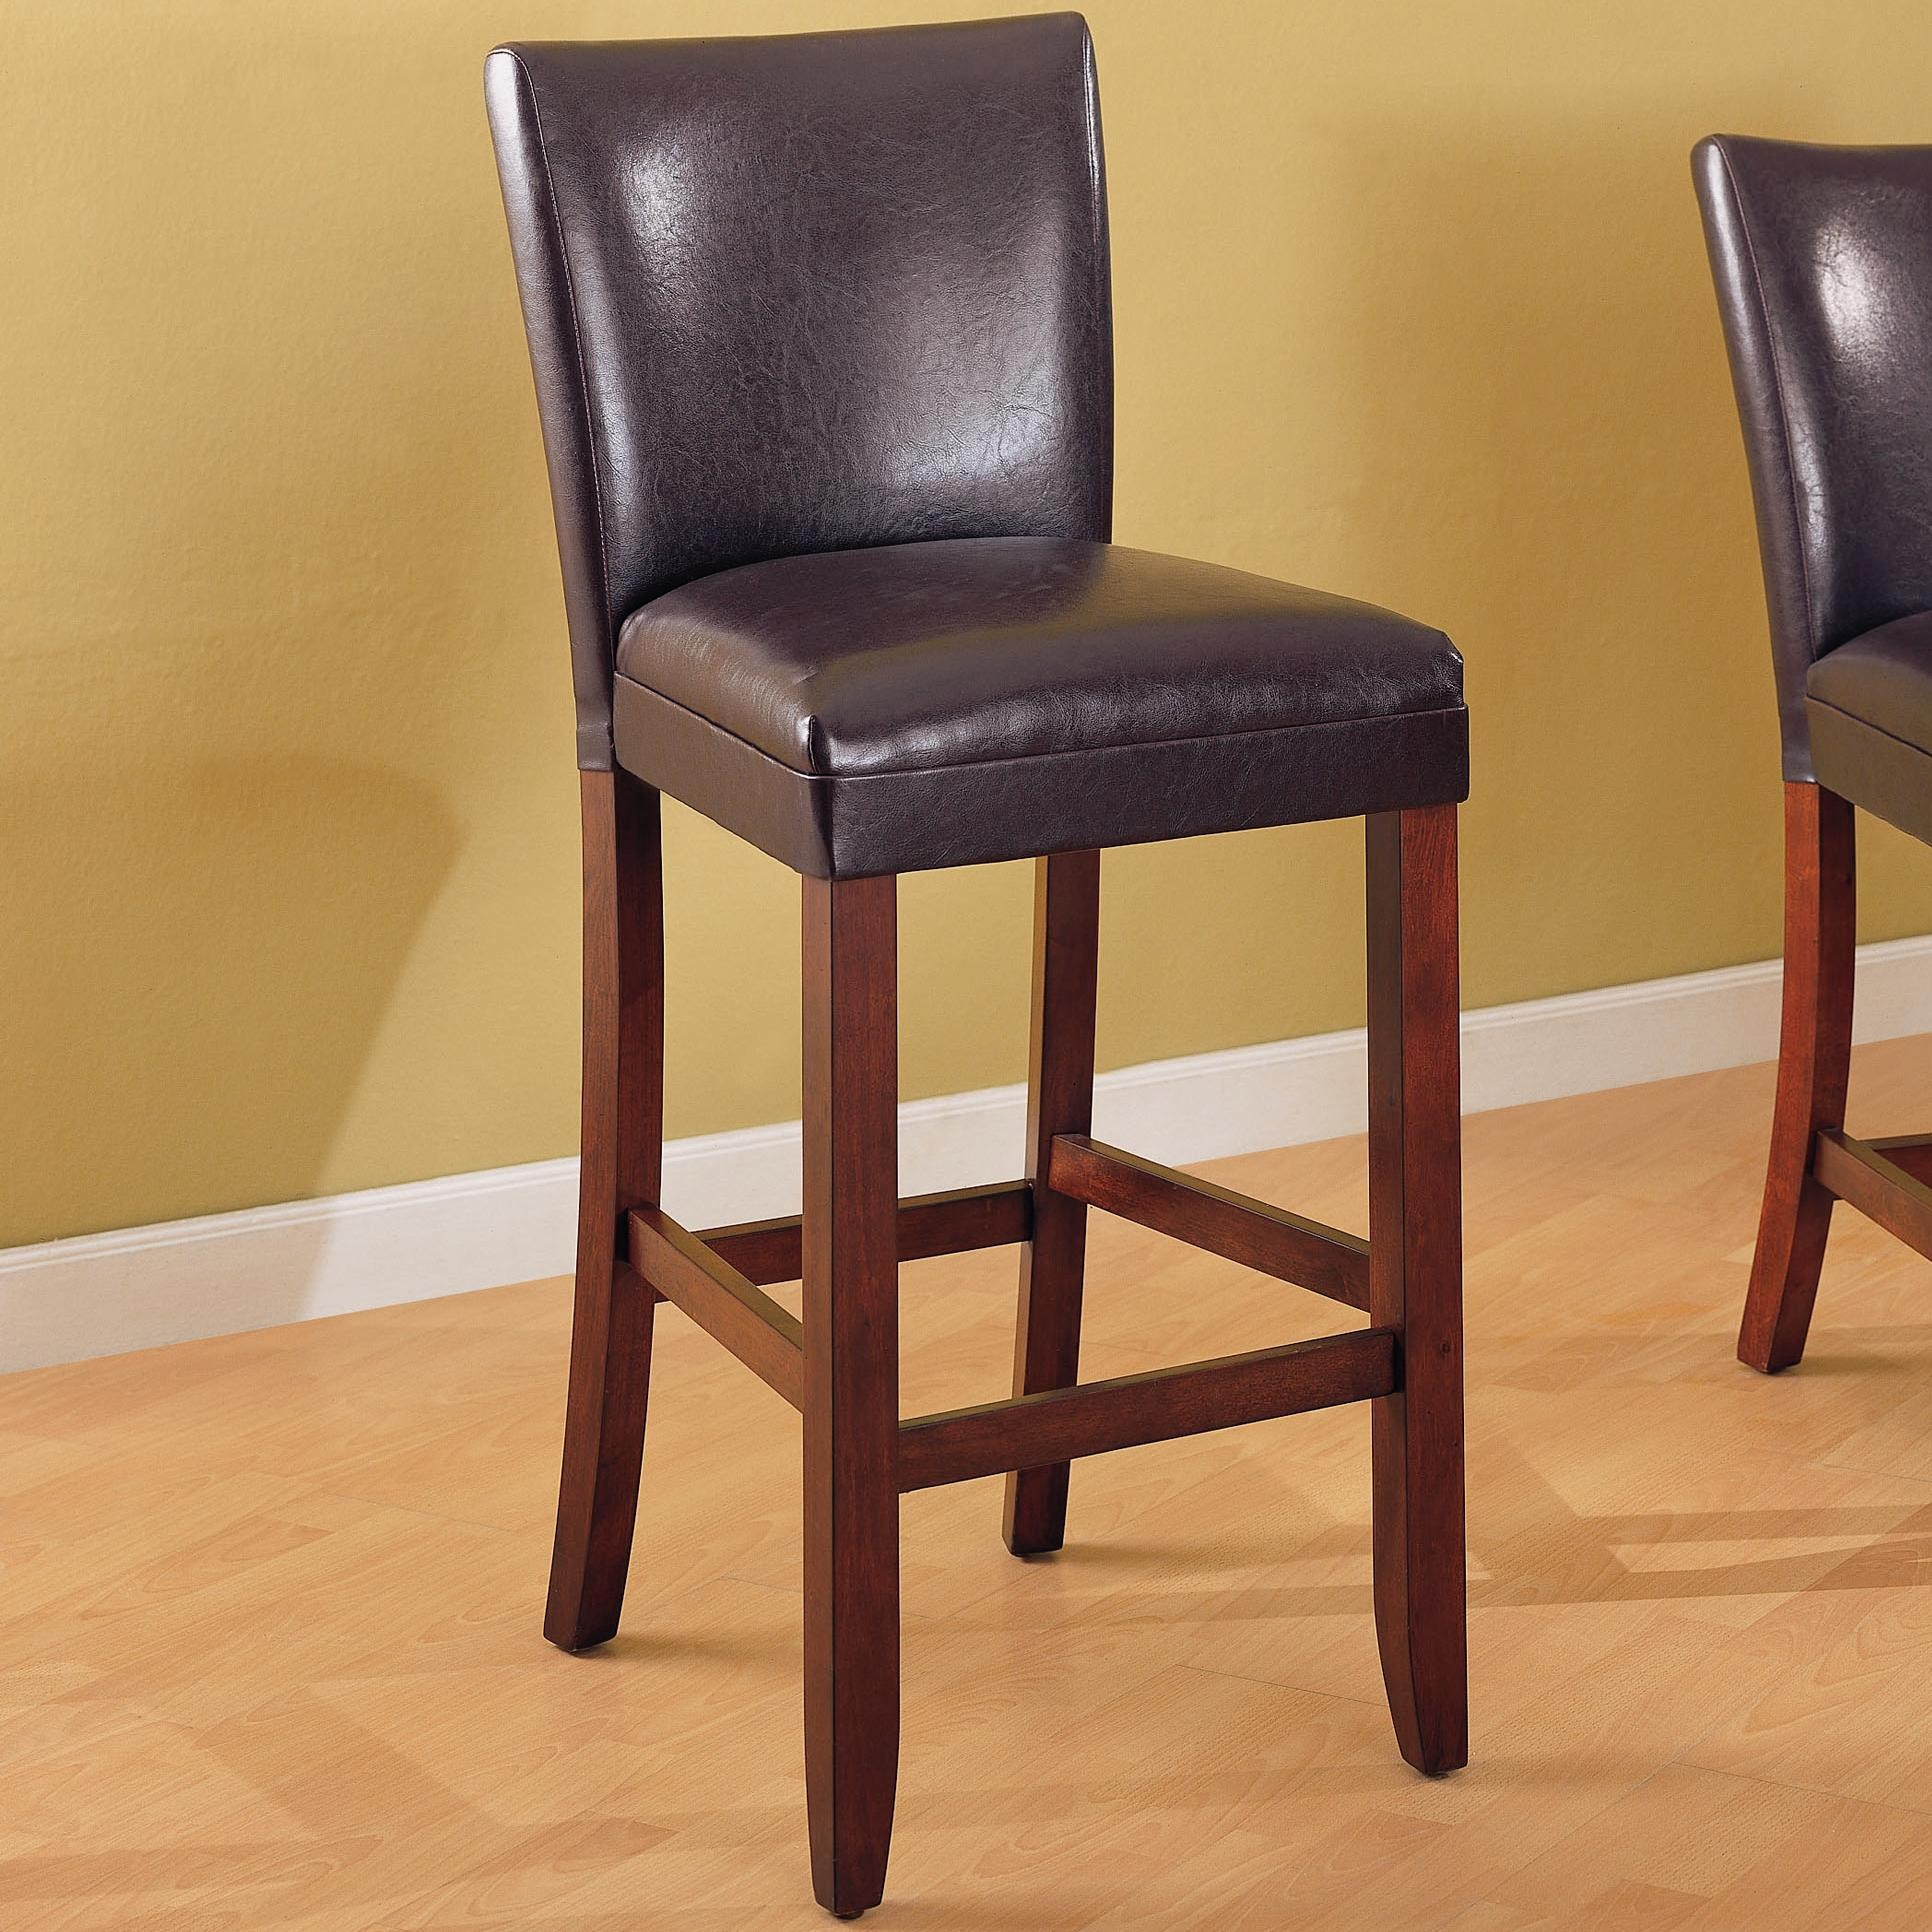 Beautiful leather bar stools for home furniture with leather swivel bar stools